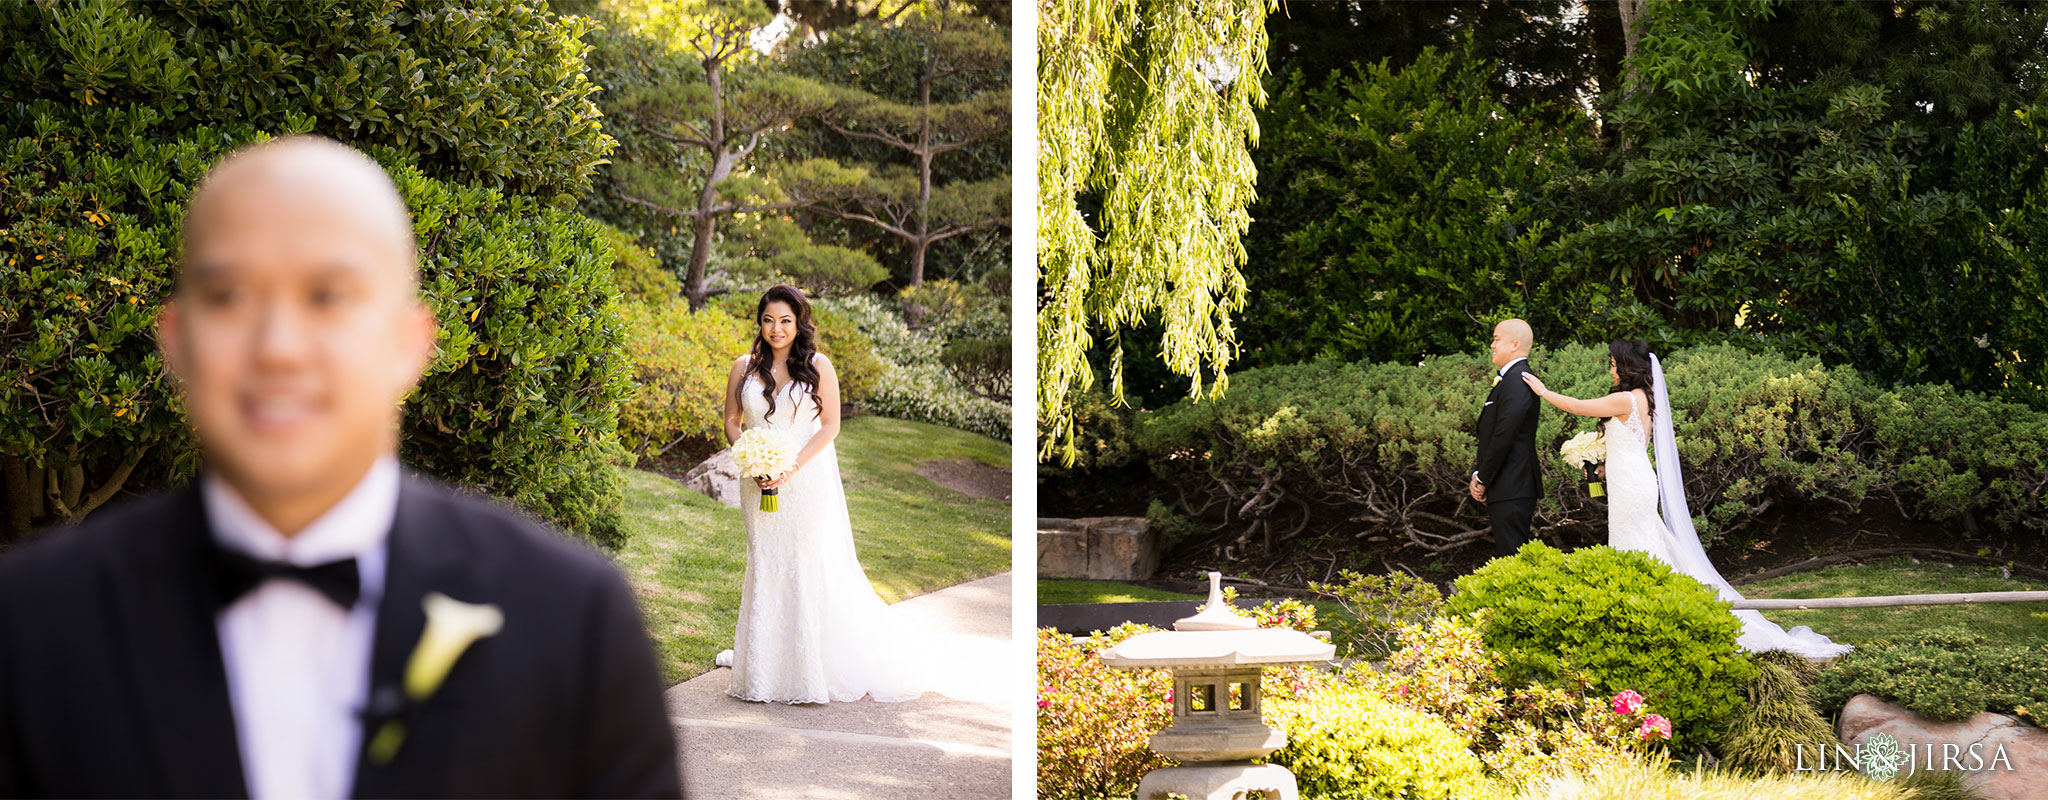 11 earl burns miller japanese gardens long beach wedding photography